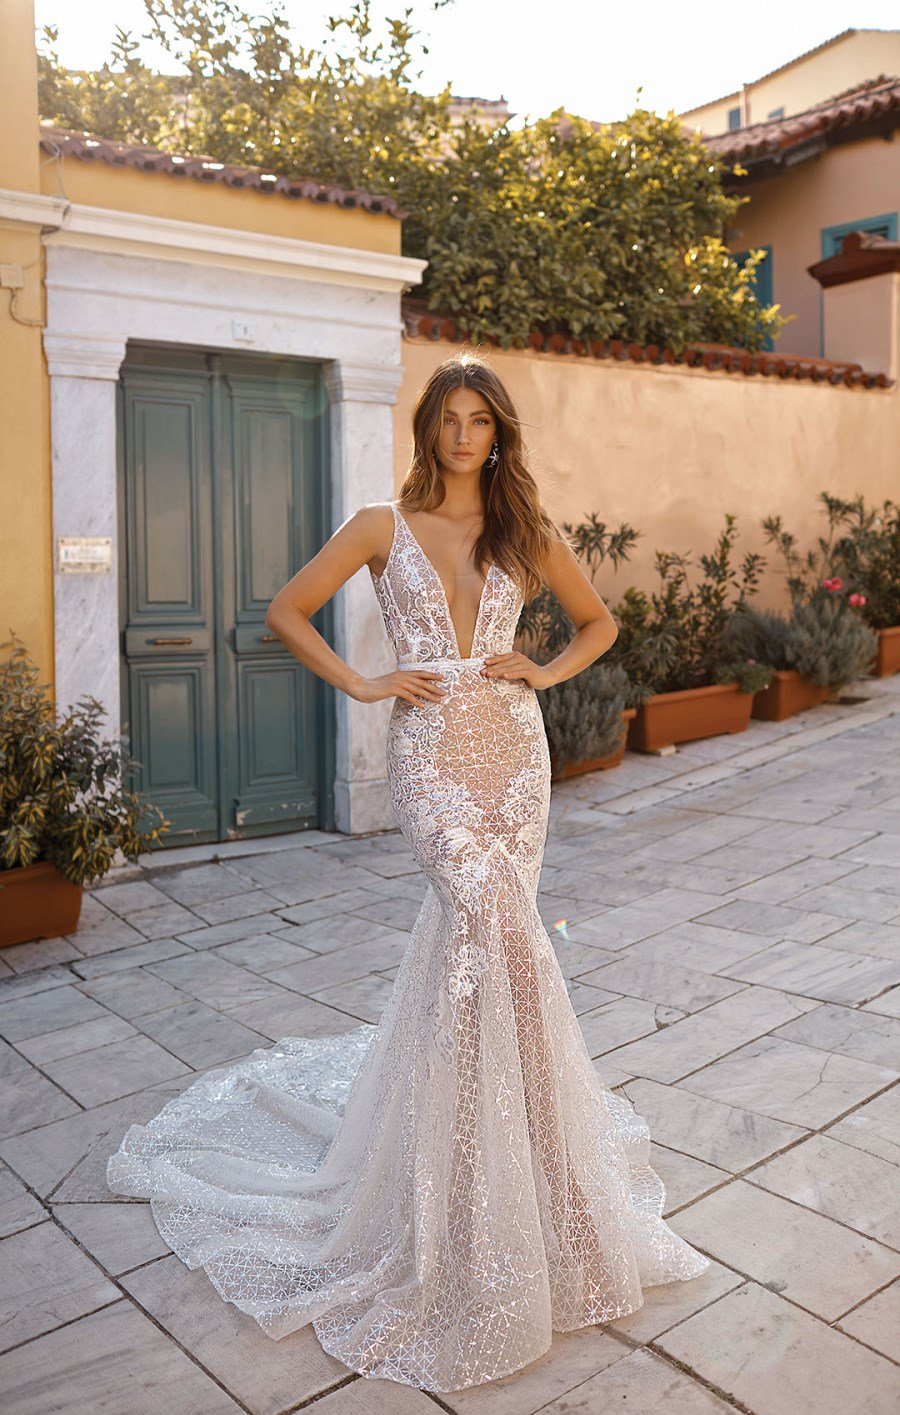 berta-wedding-dress-2019-1 (11)_1